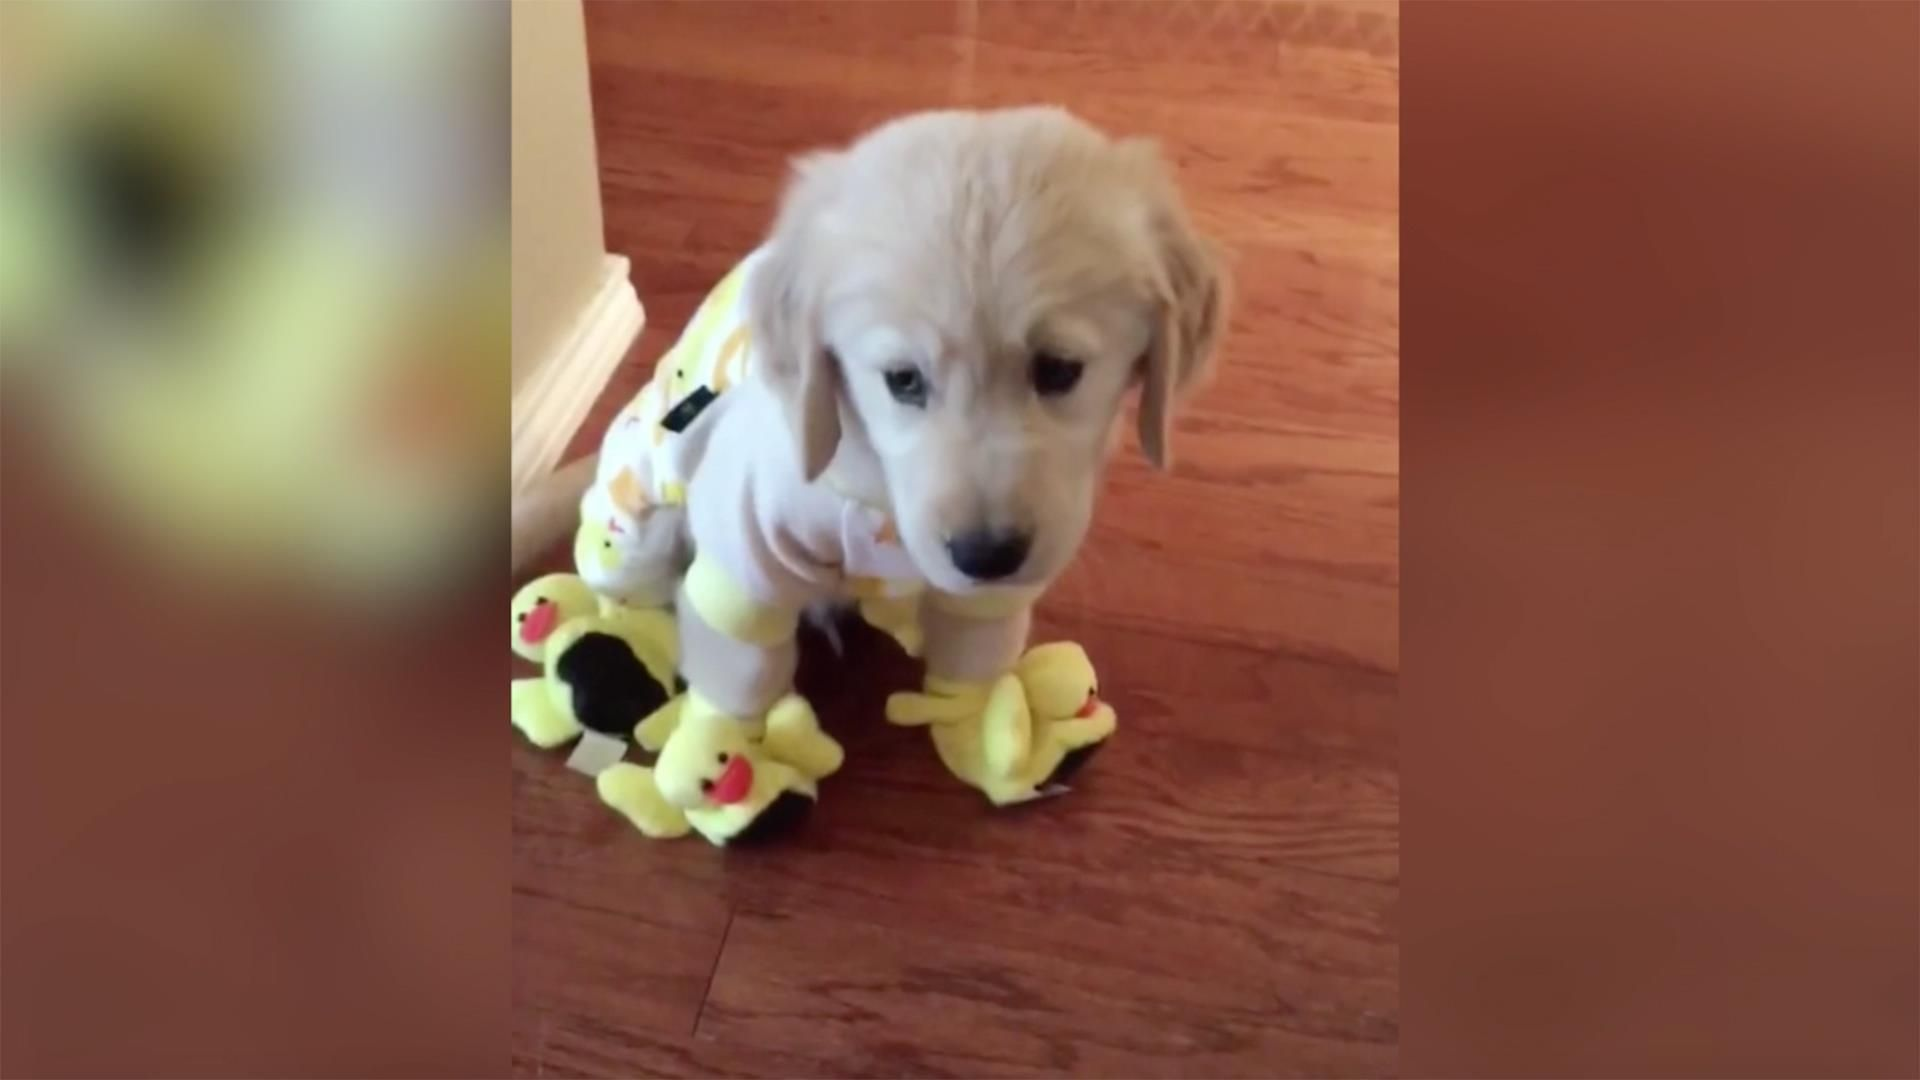 This Adorable Golden Retriever In Duck Pajamas And Slippers Will